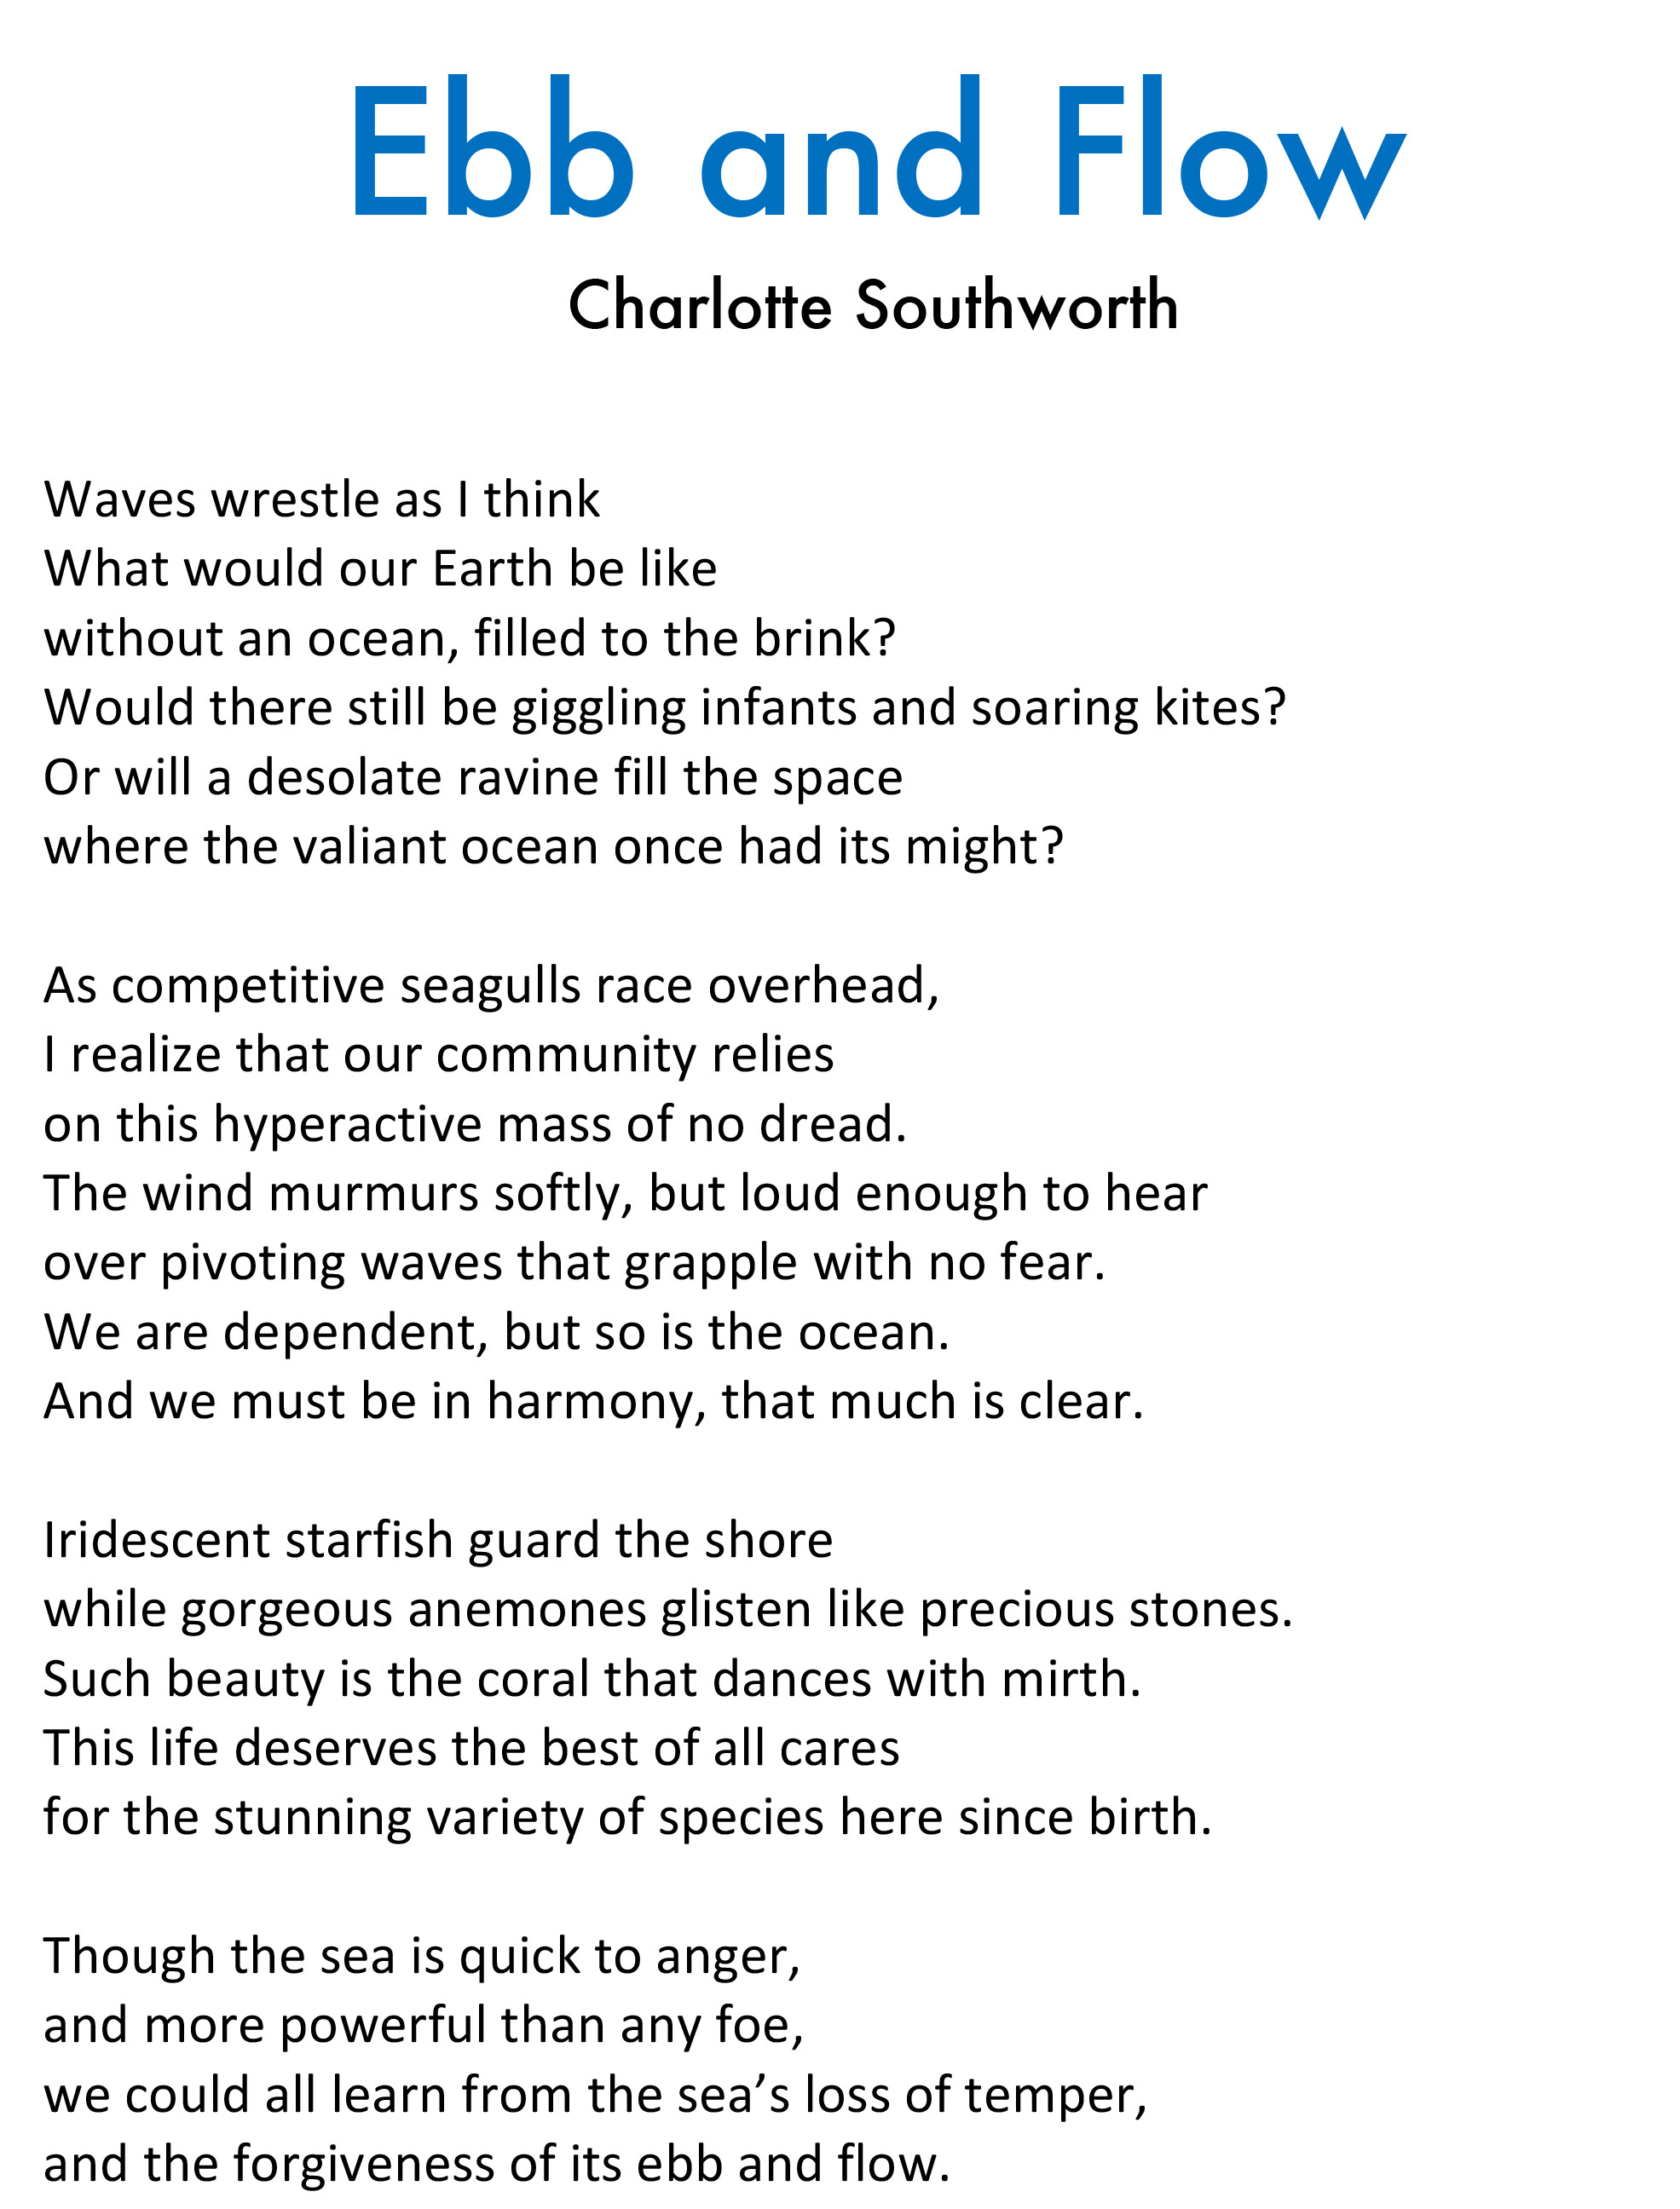 Charlotte Southworth - Ebb and FLow